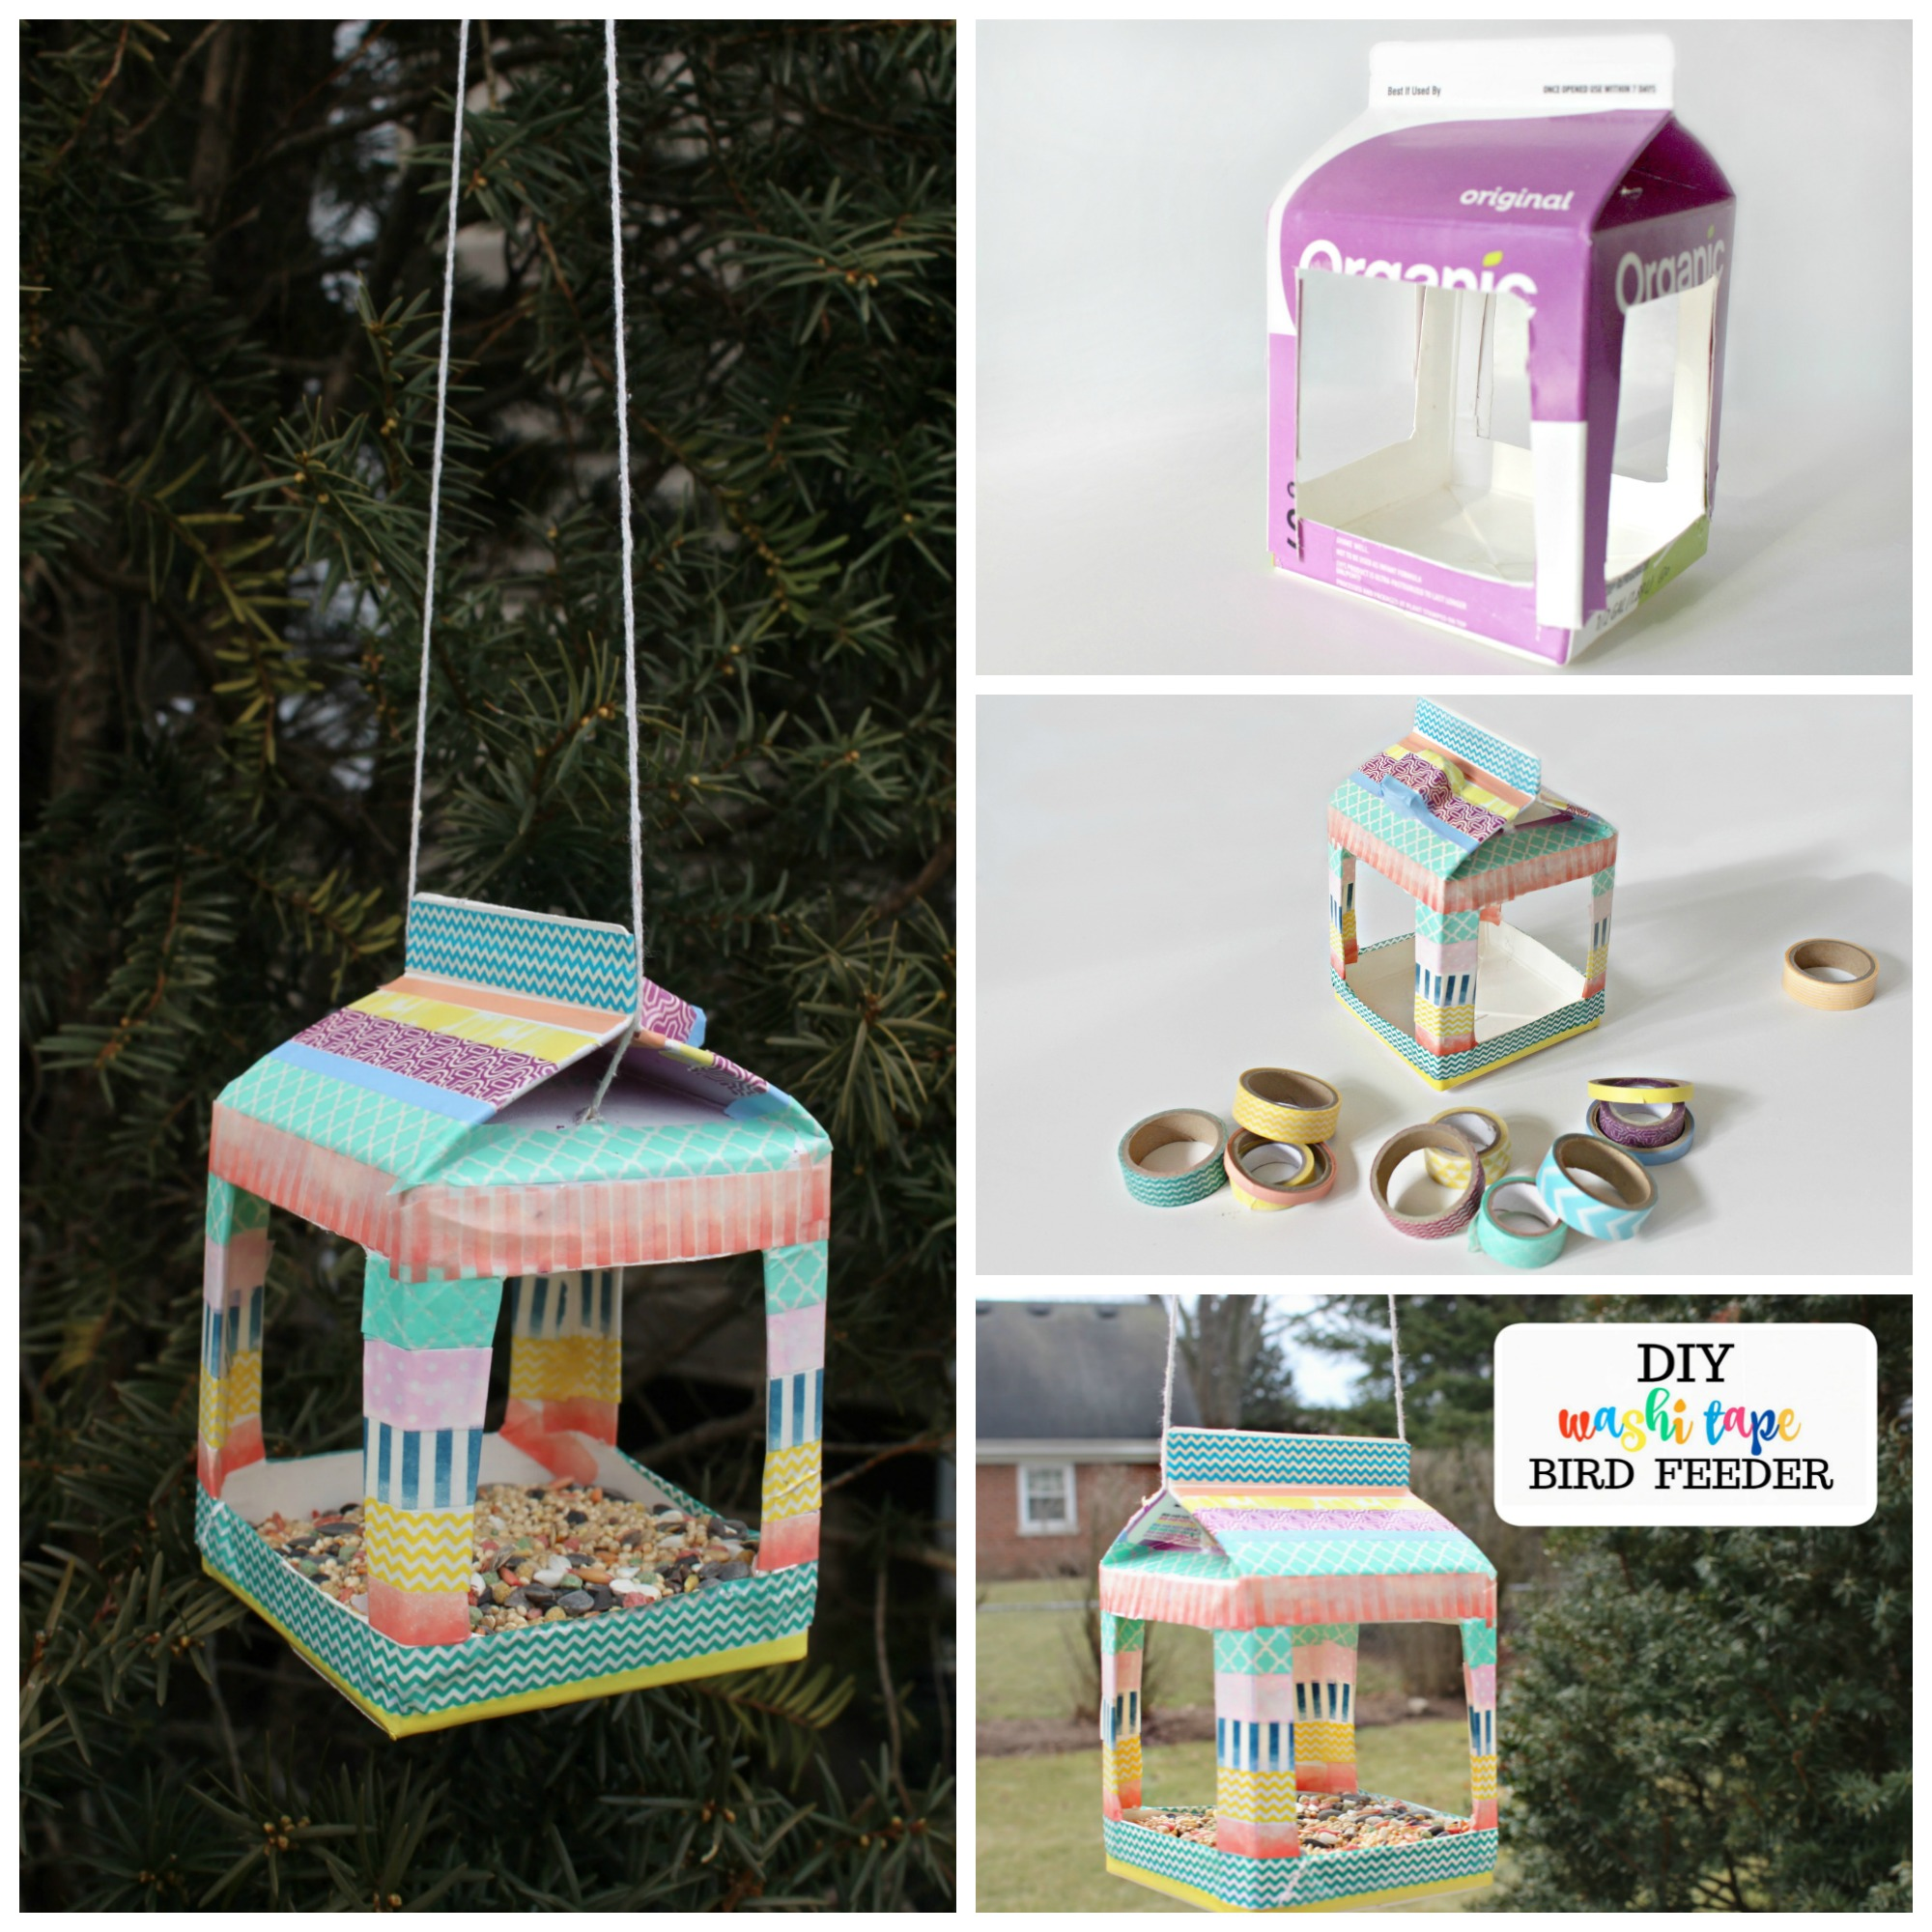 washi tape bird feeder